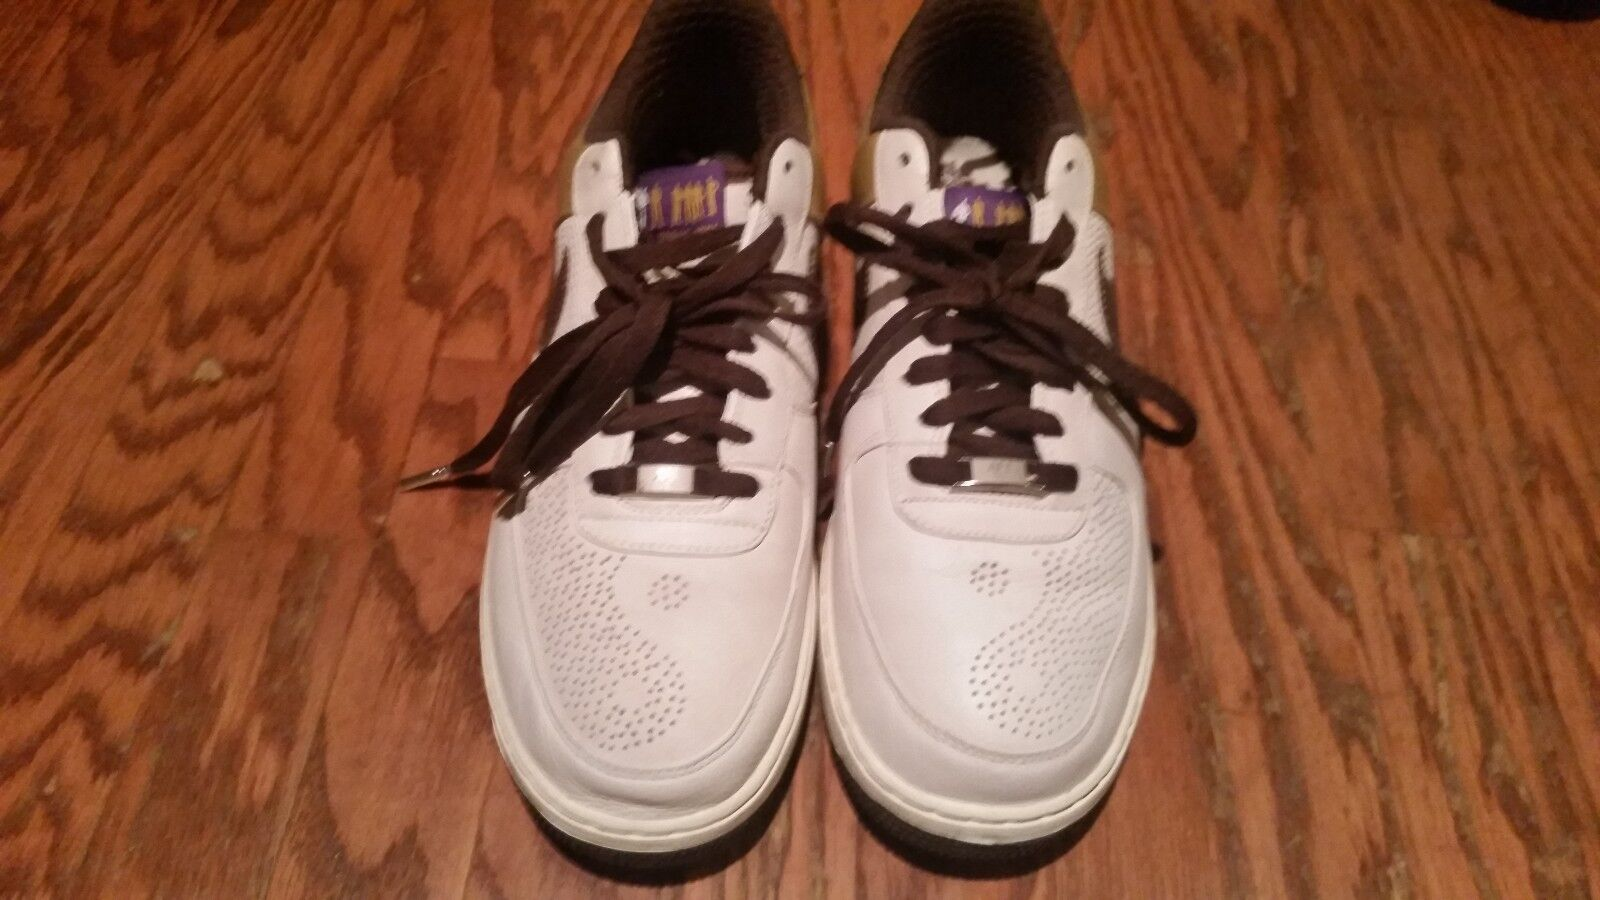 Nike shoes Air Force one/1 brown/gold shoes Nike lowtop size 11.5 normal width abab7e